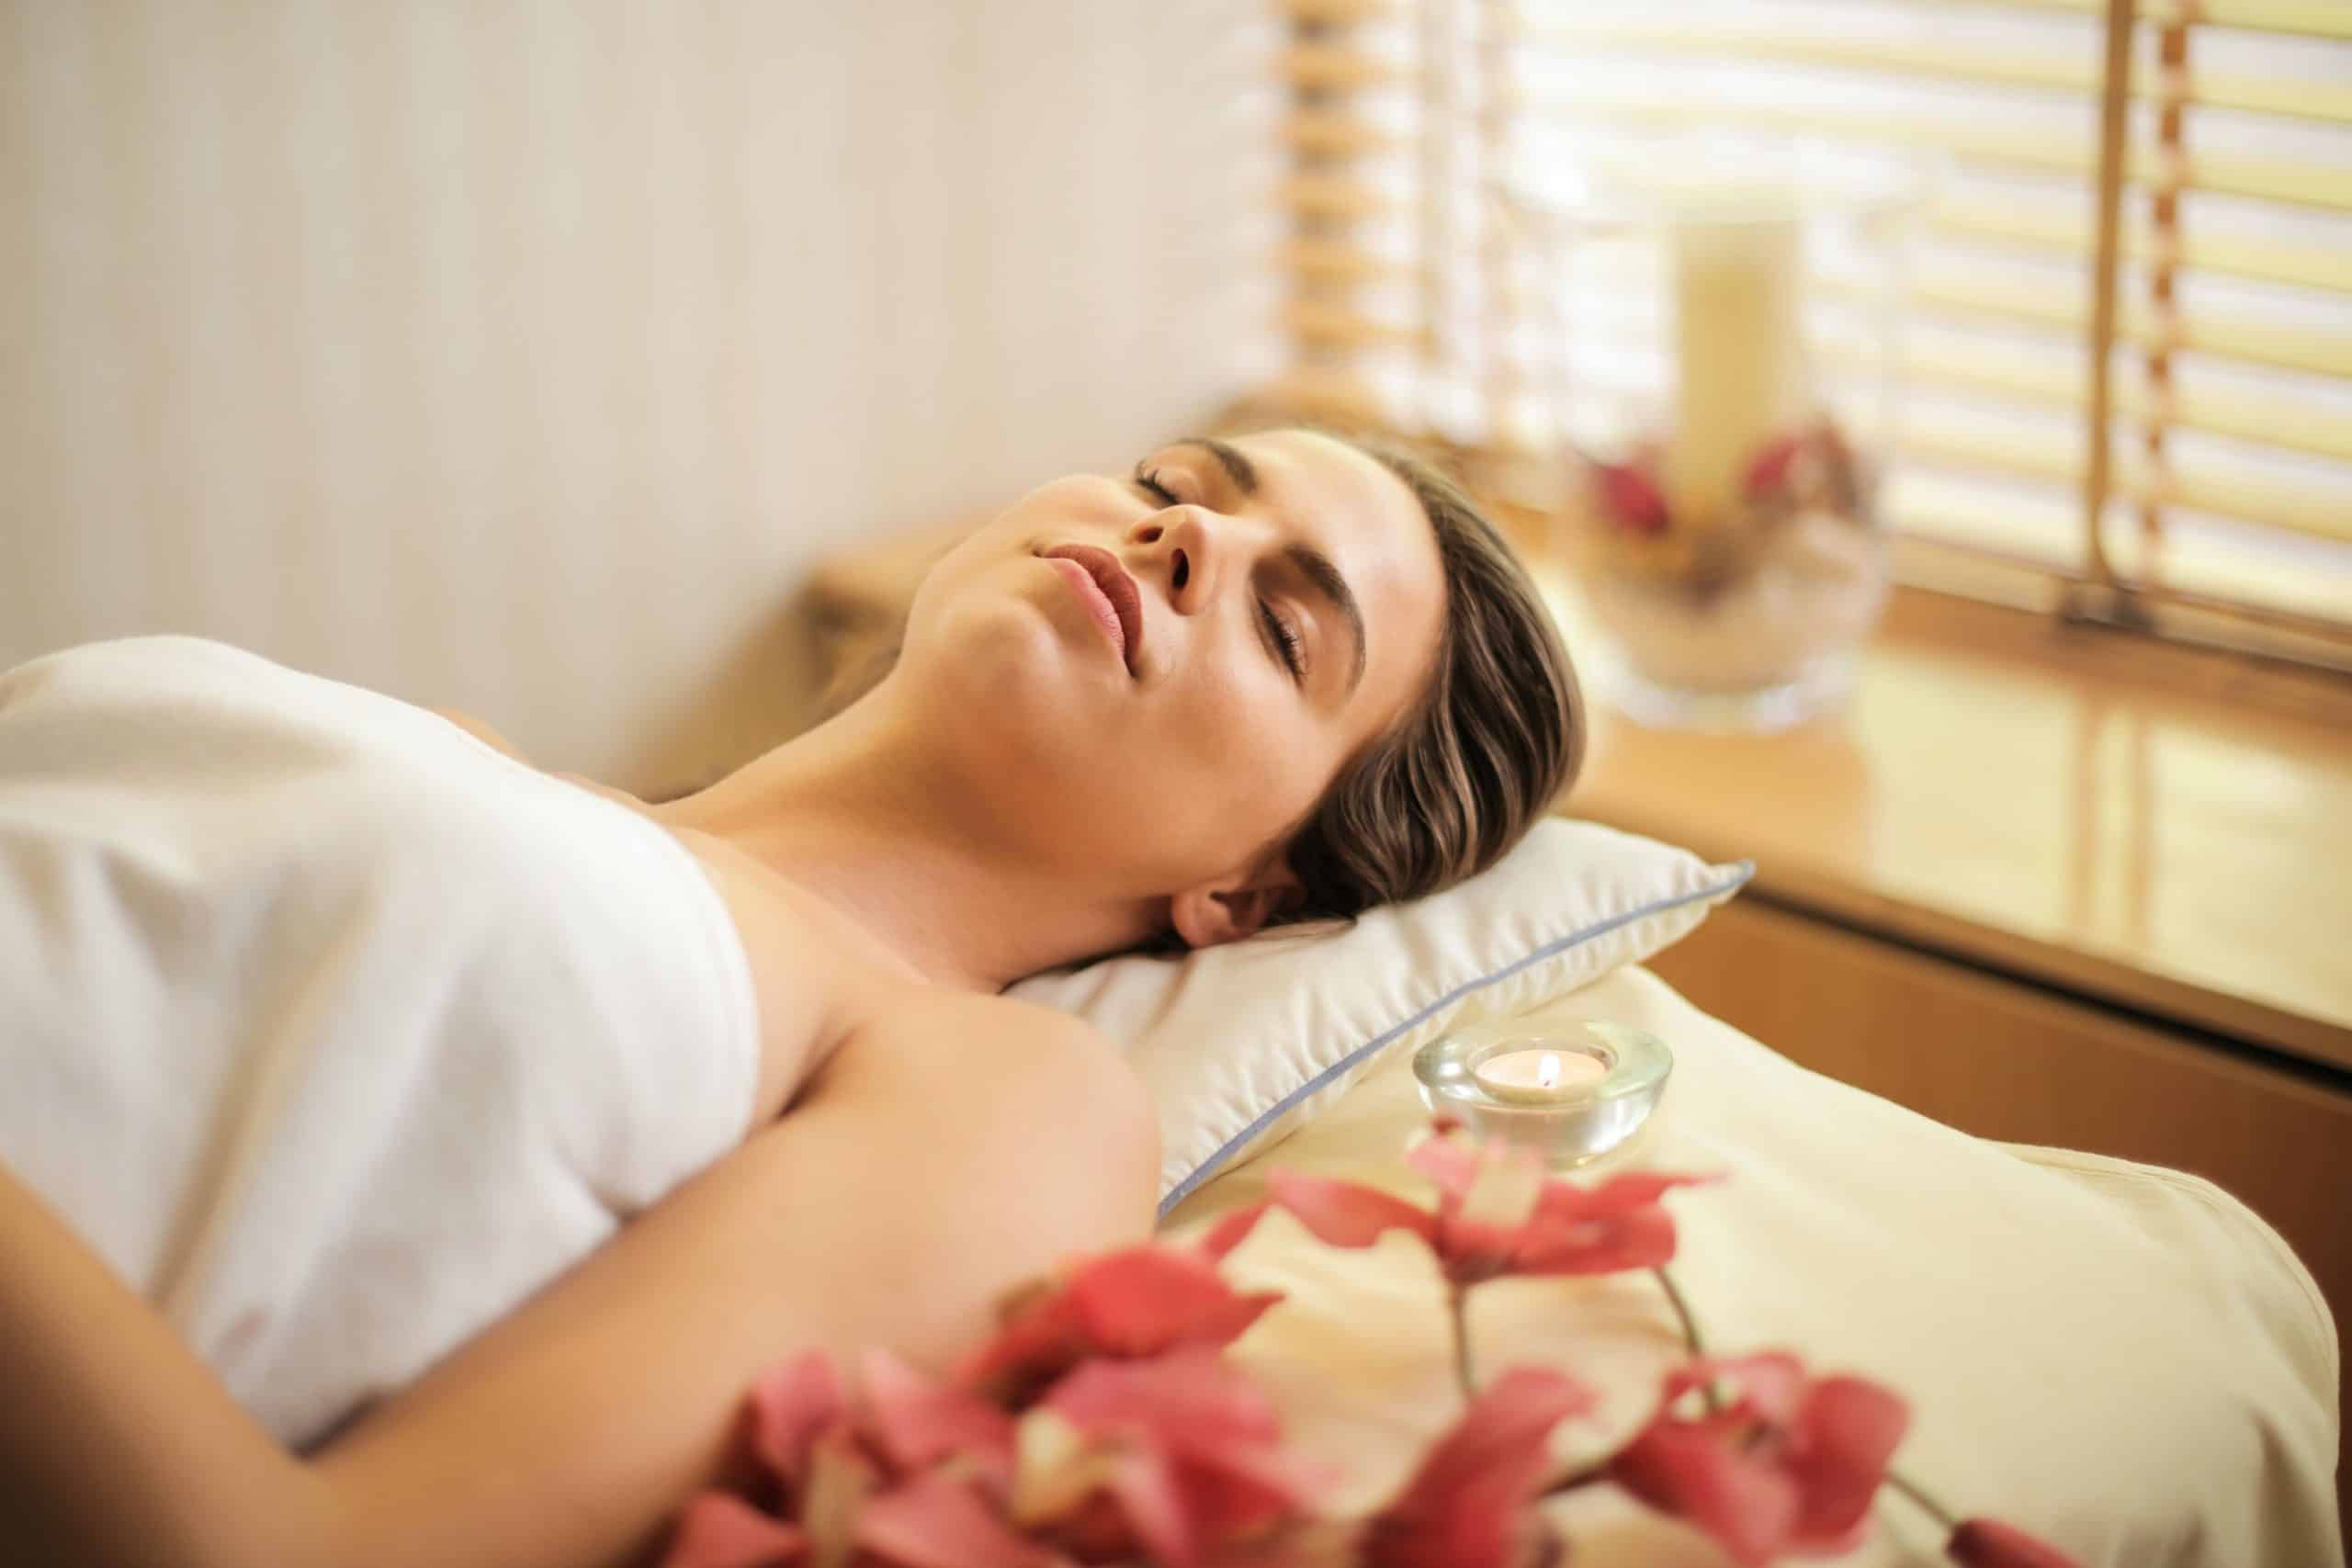 Woman at spa relaxing